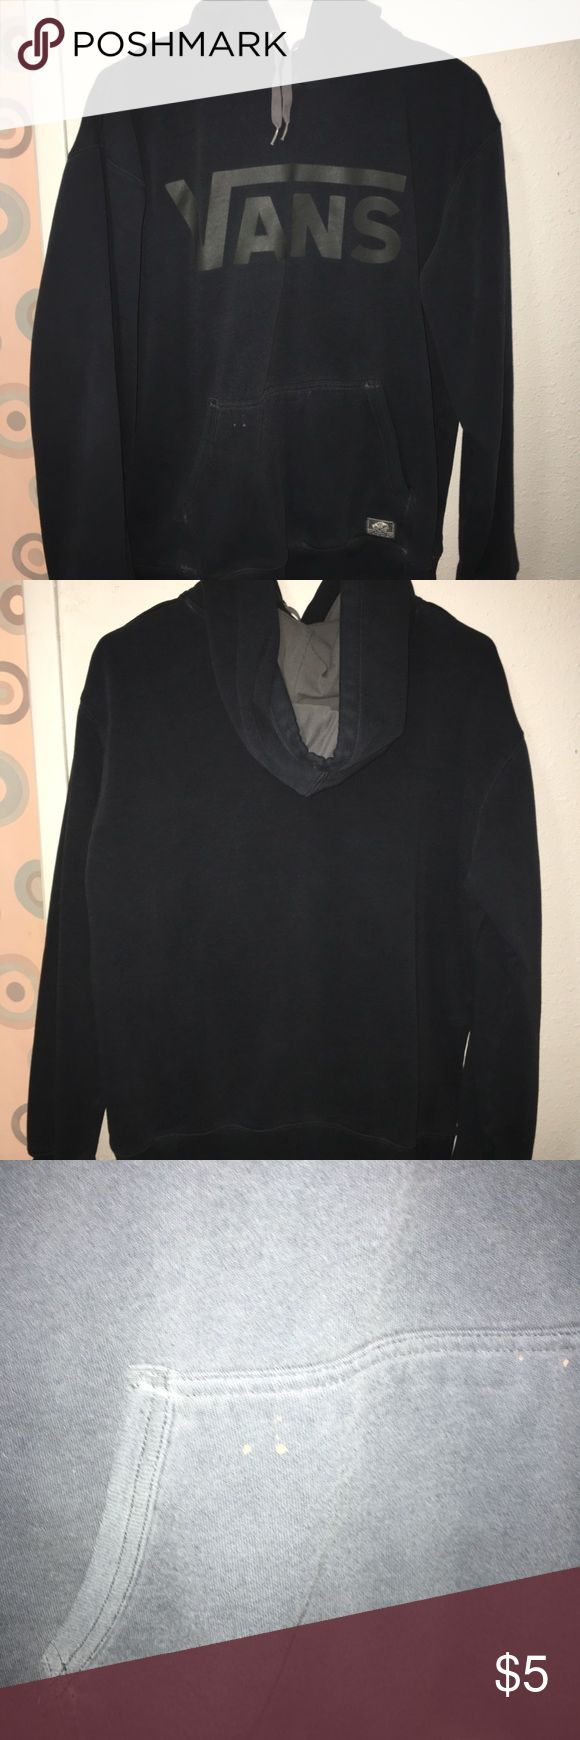 Vans black sweater Classic black vans sweater. Had a small black stain on the pocket. Vans Sweaters Crewneck